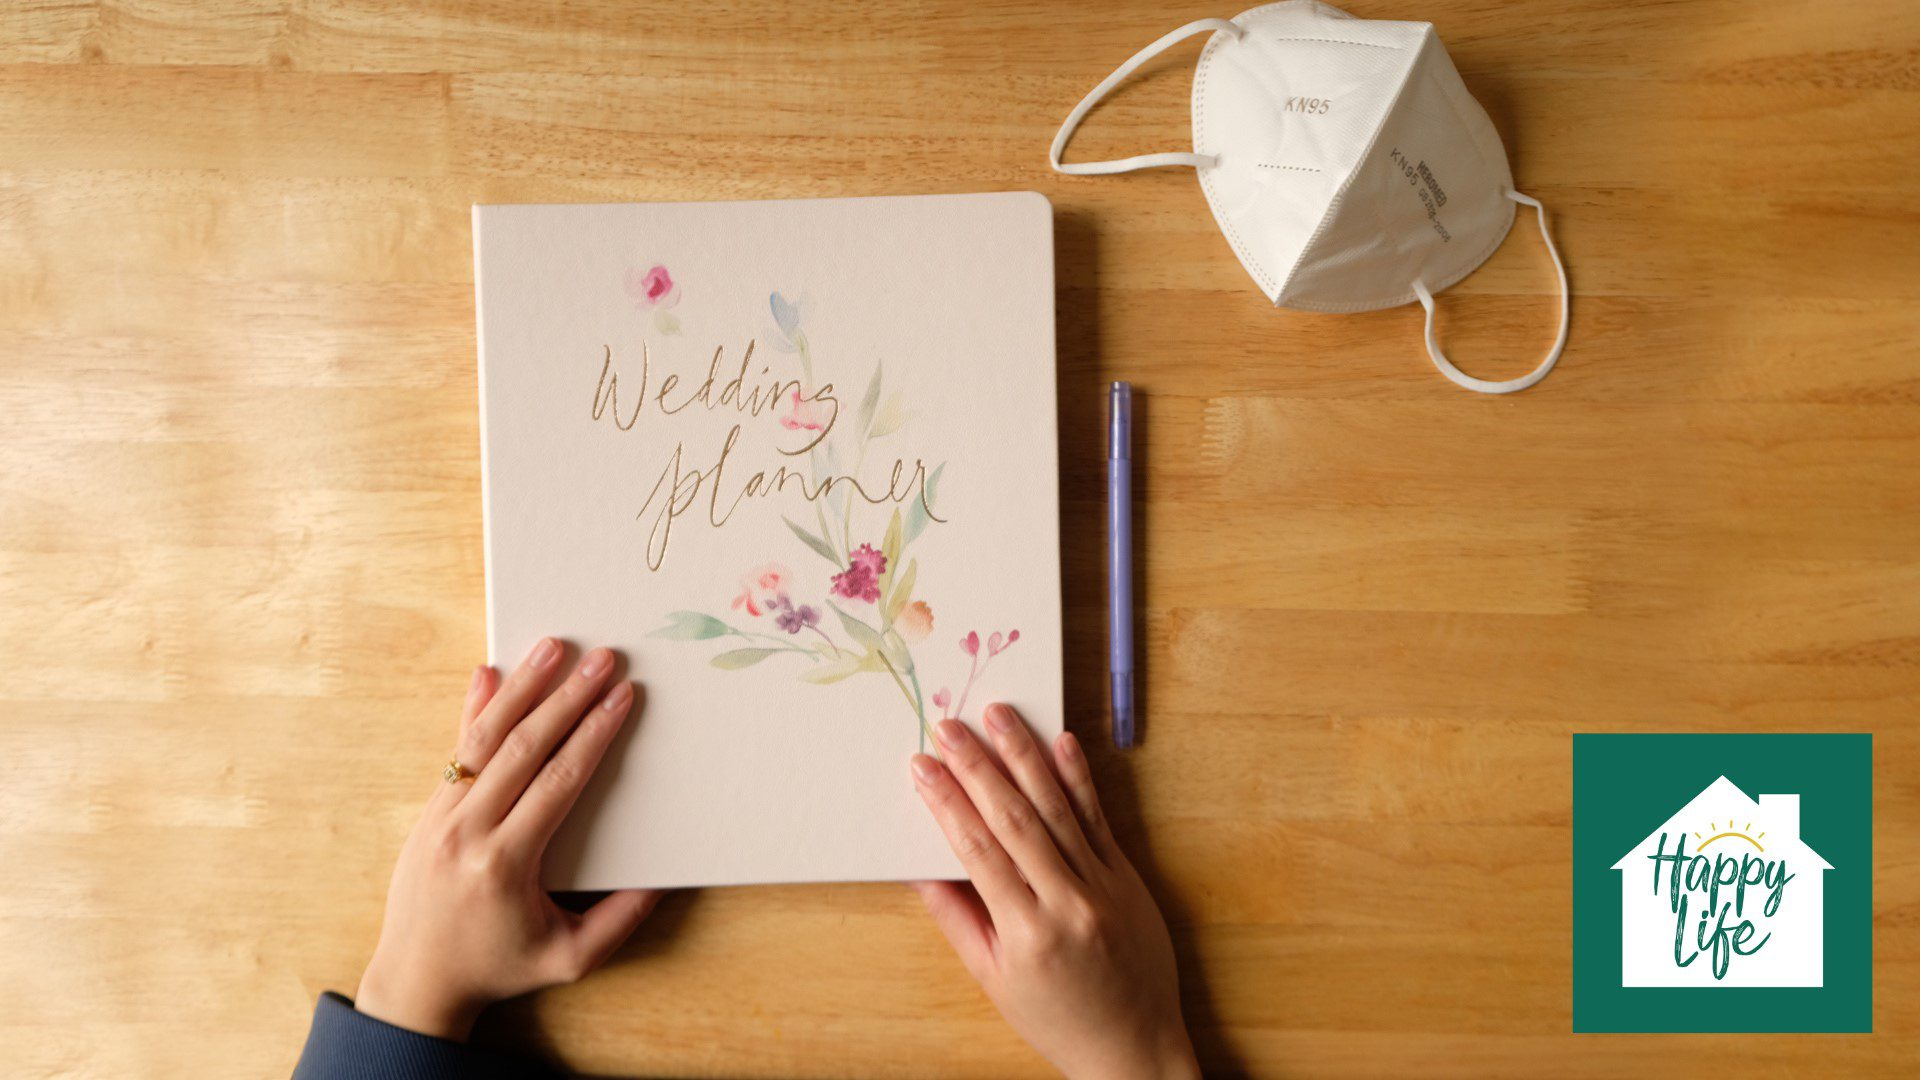 A bride-to-be with both hands on her wedding planner at a table. Her engagement ring is visible and a KN95 mask and pen are on the table beside the planner.